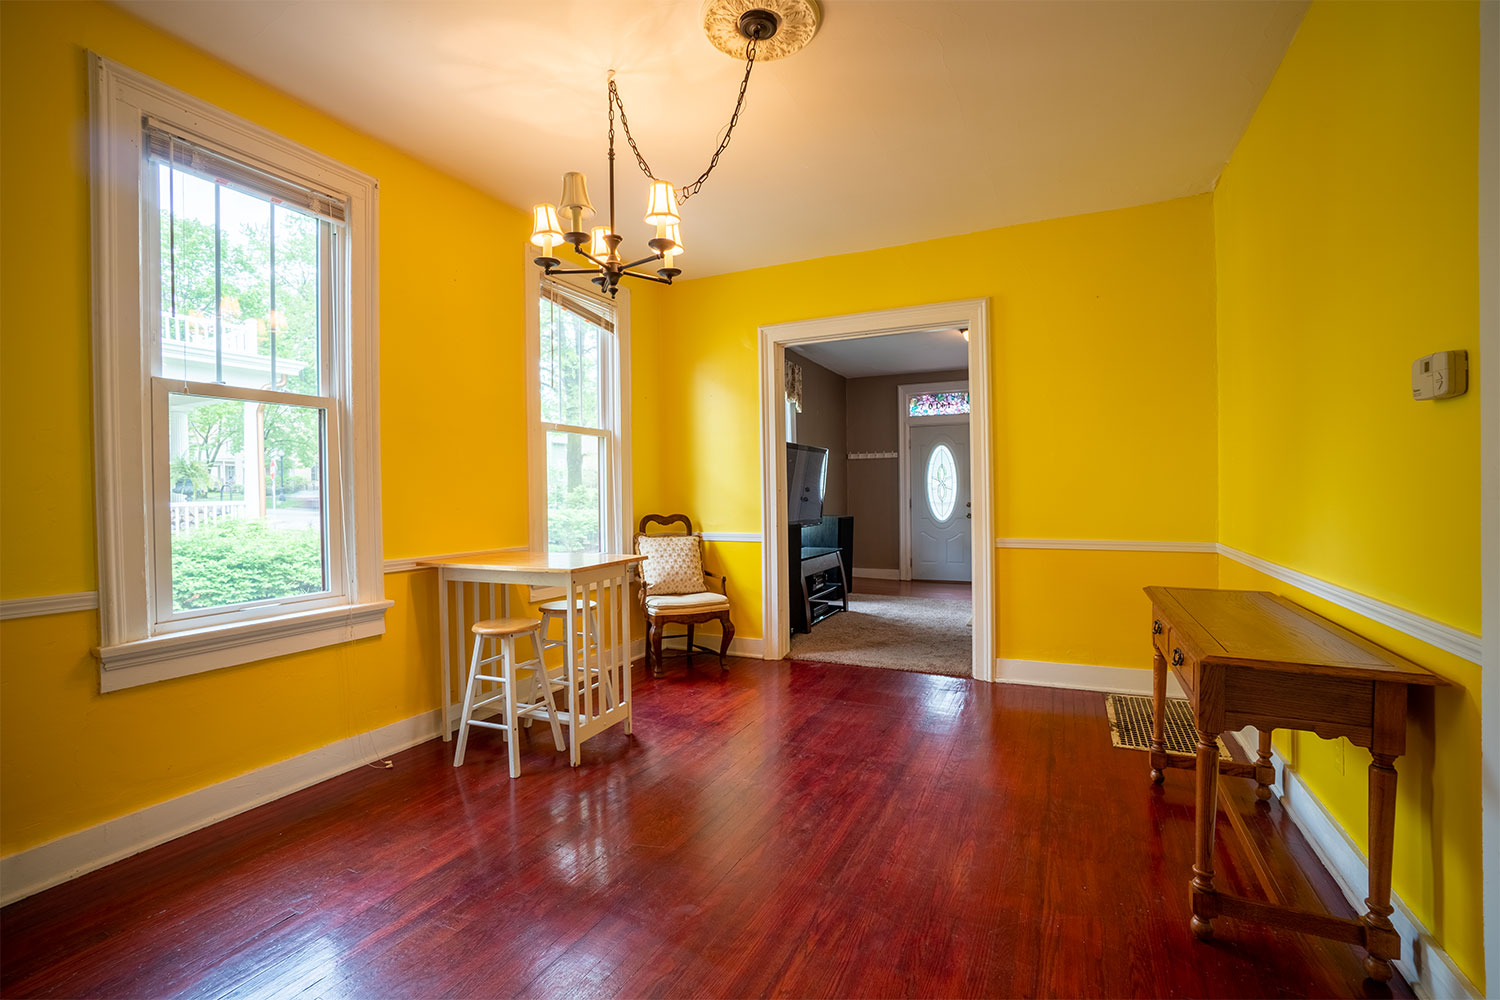 Real Estate Photography: Dining Room